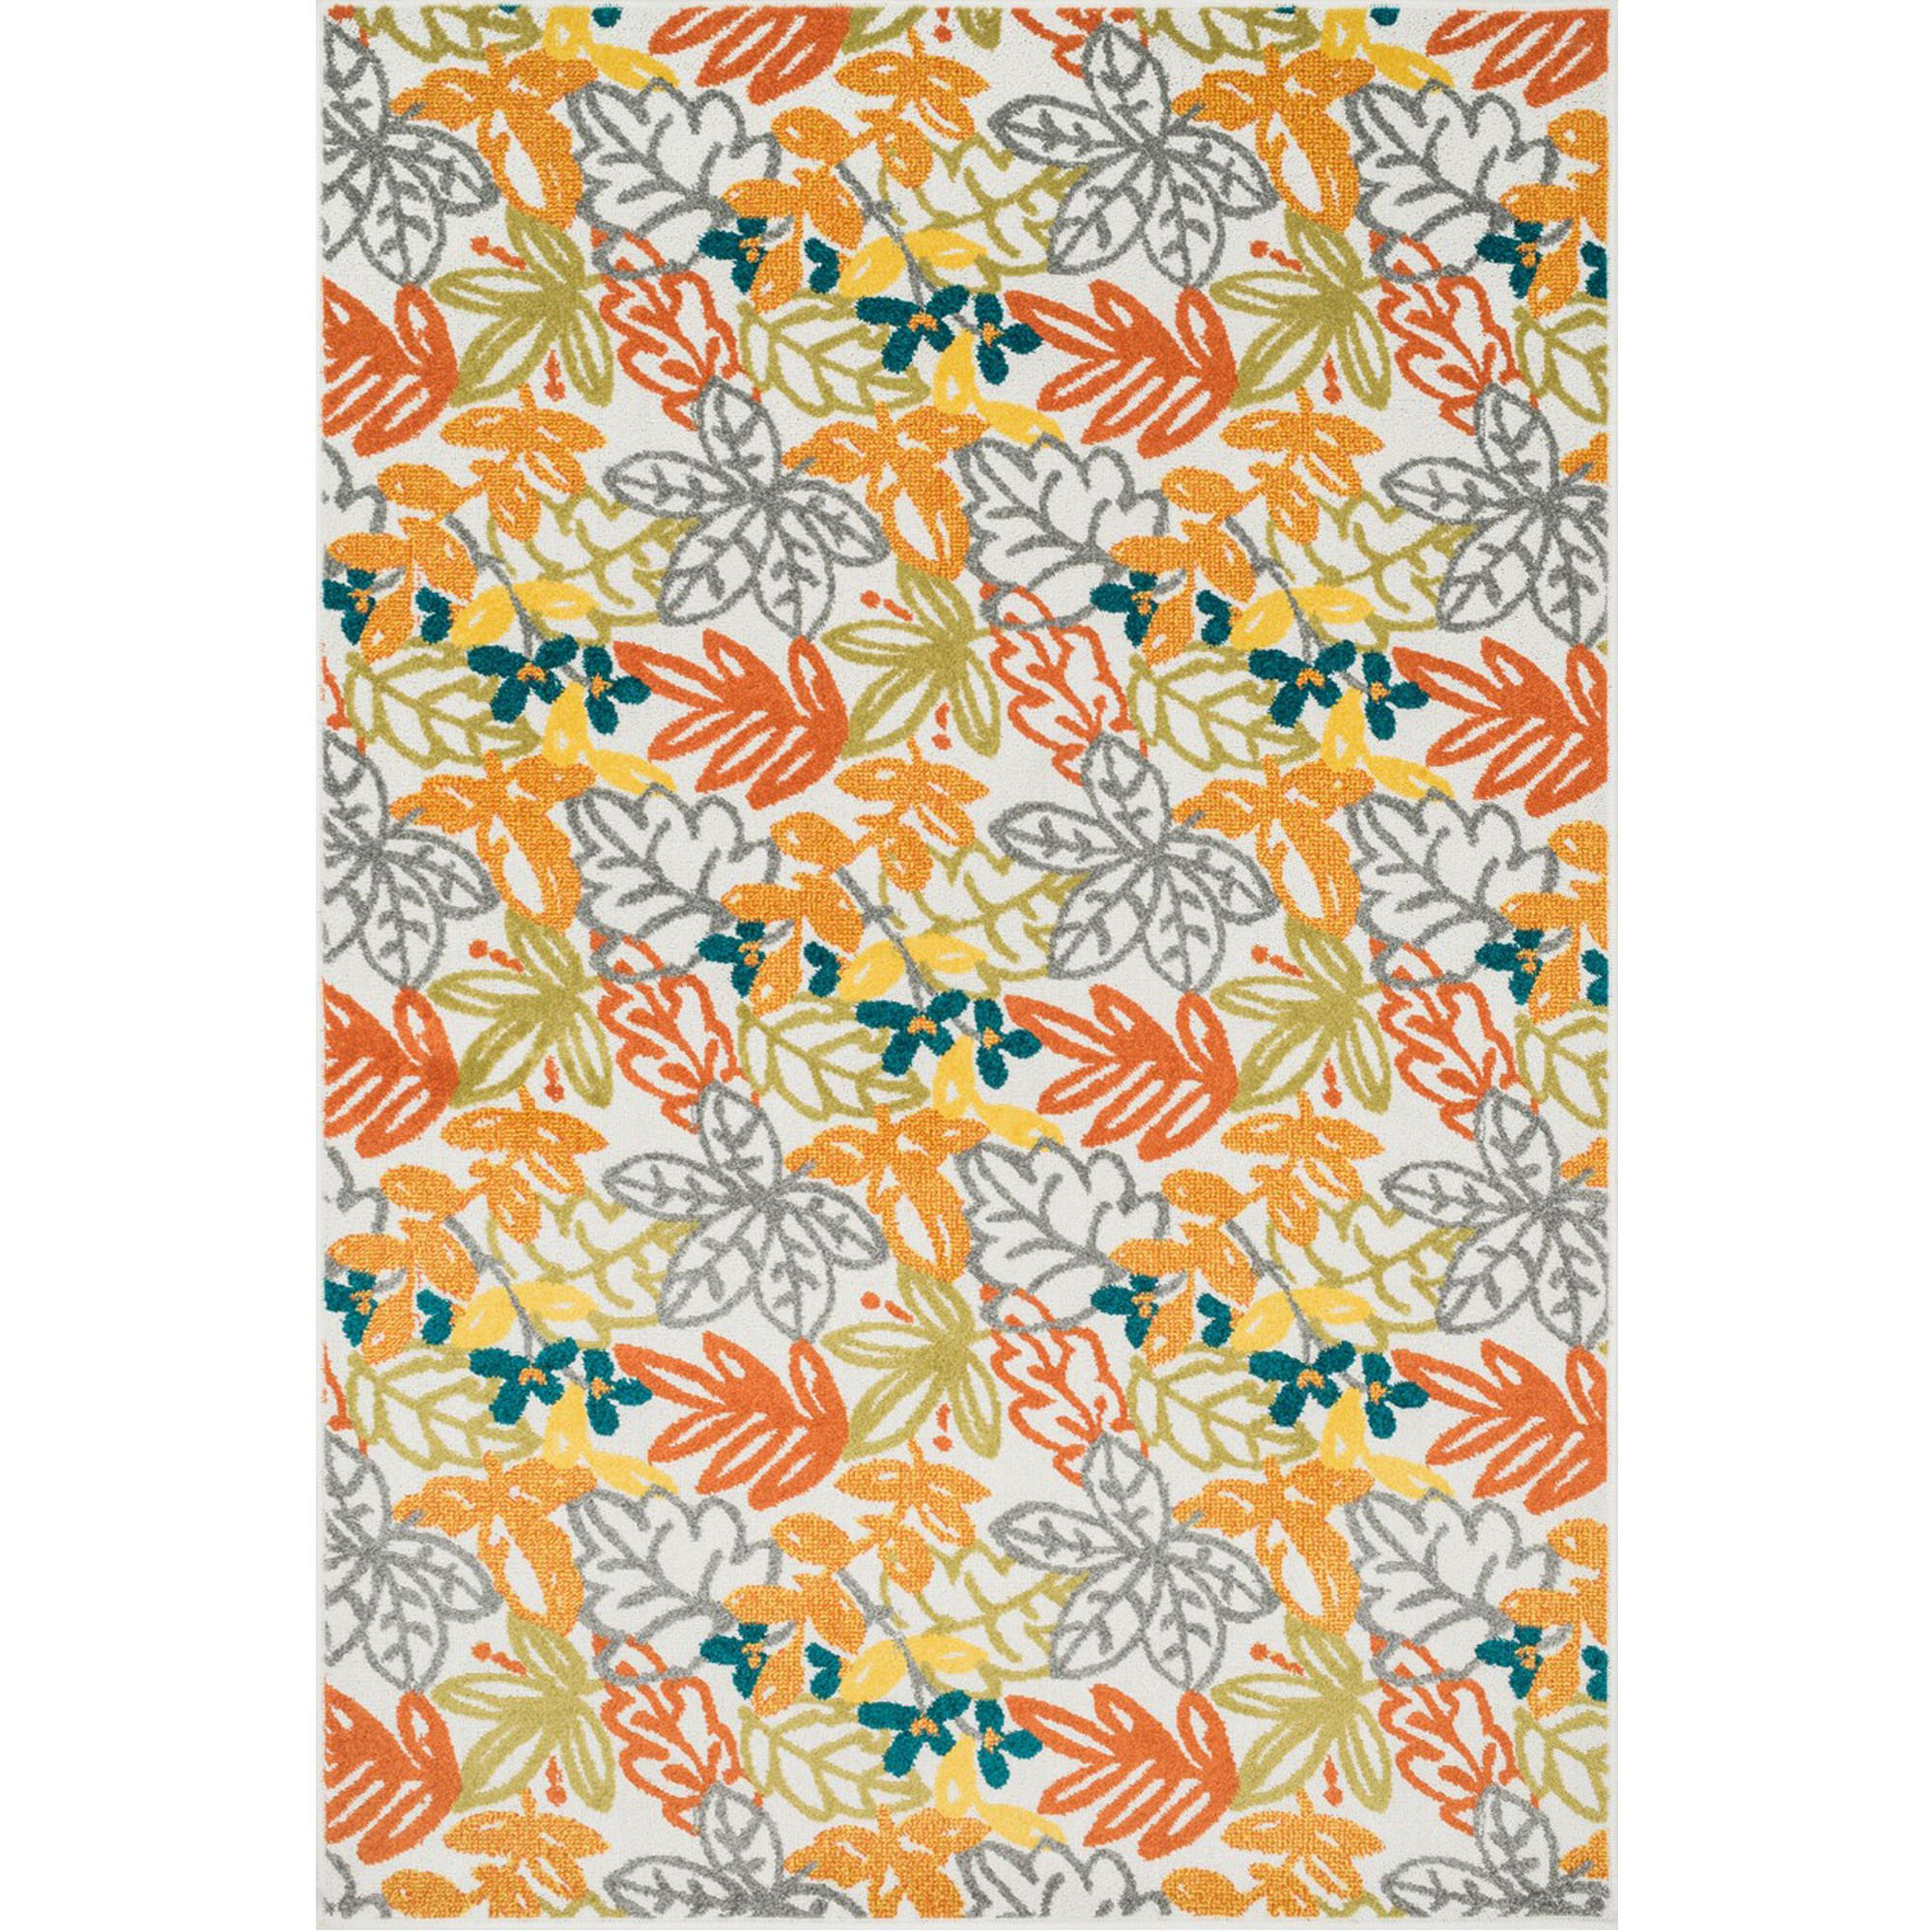 Orange Fall Leaves Outdoor Rug 5ft 2in X 7ft 5in Loloi